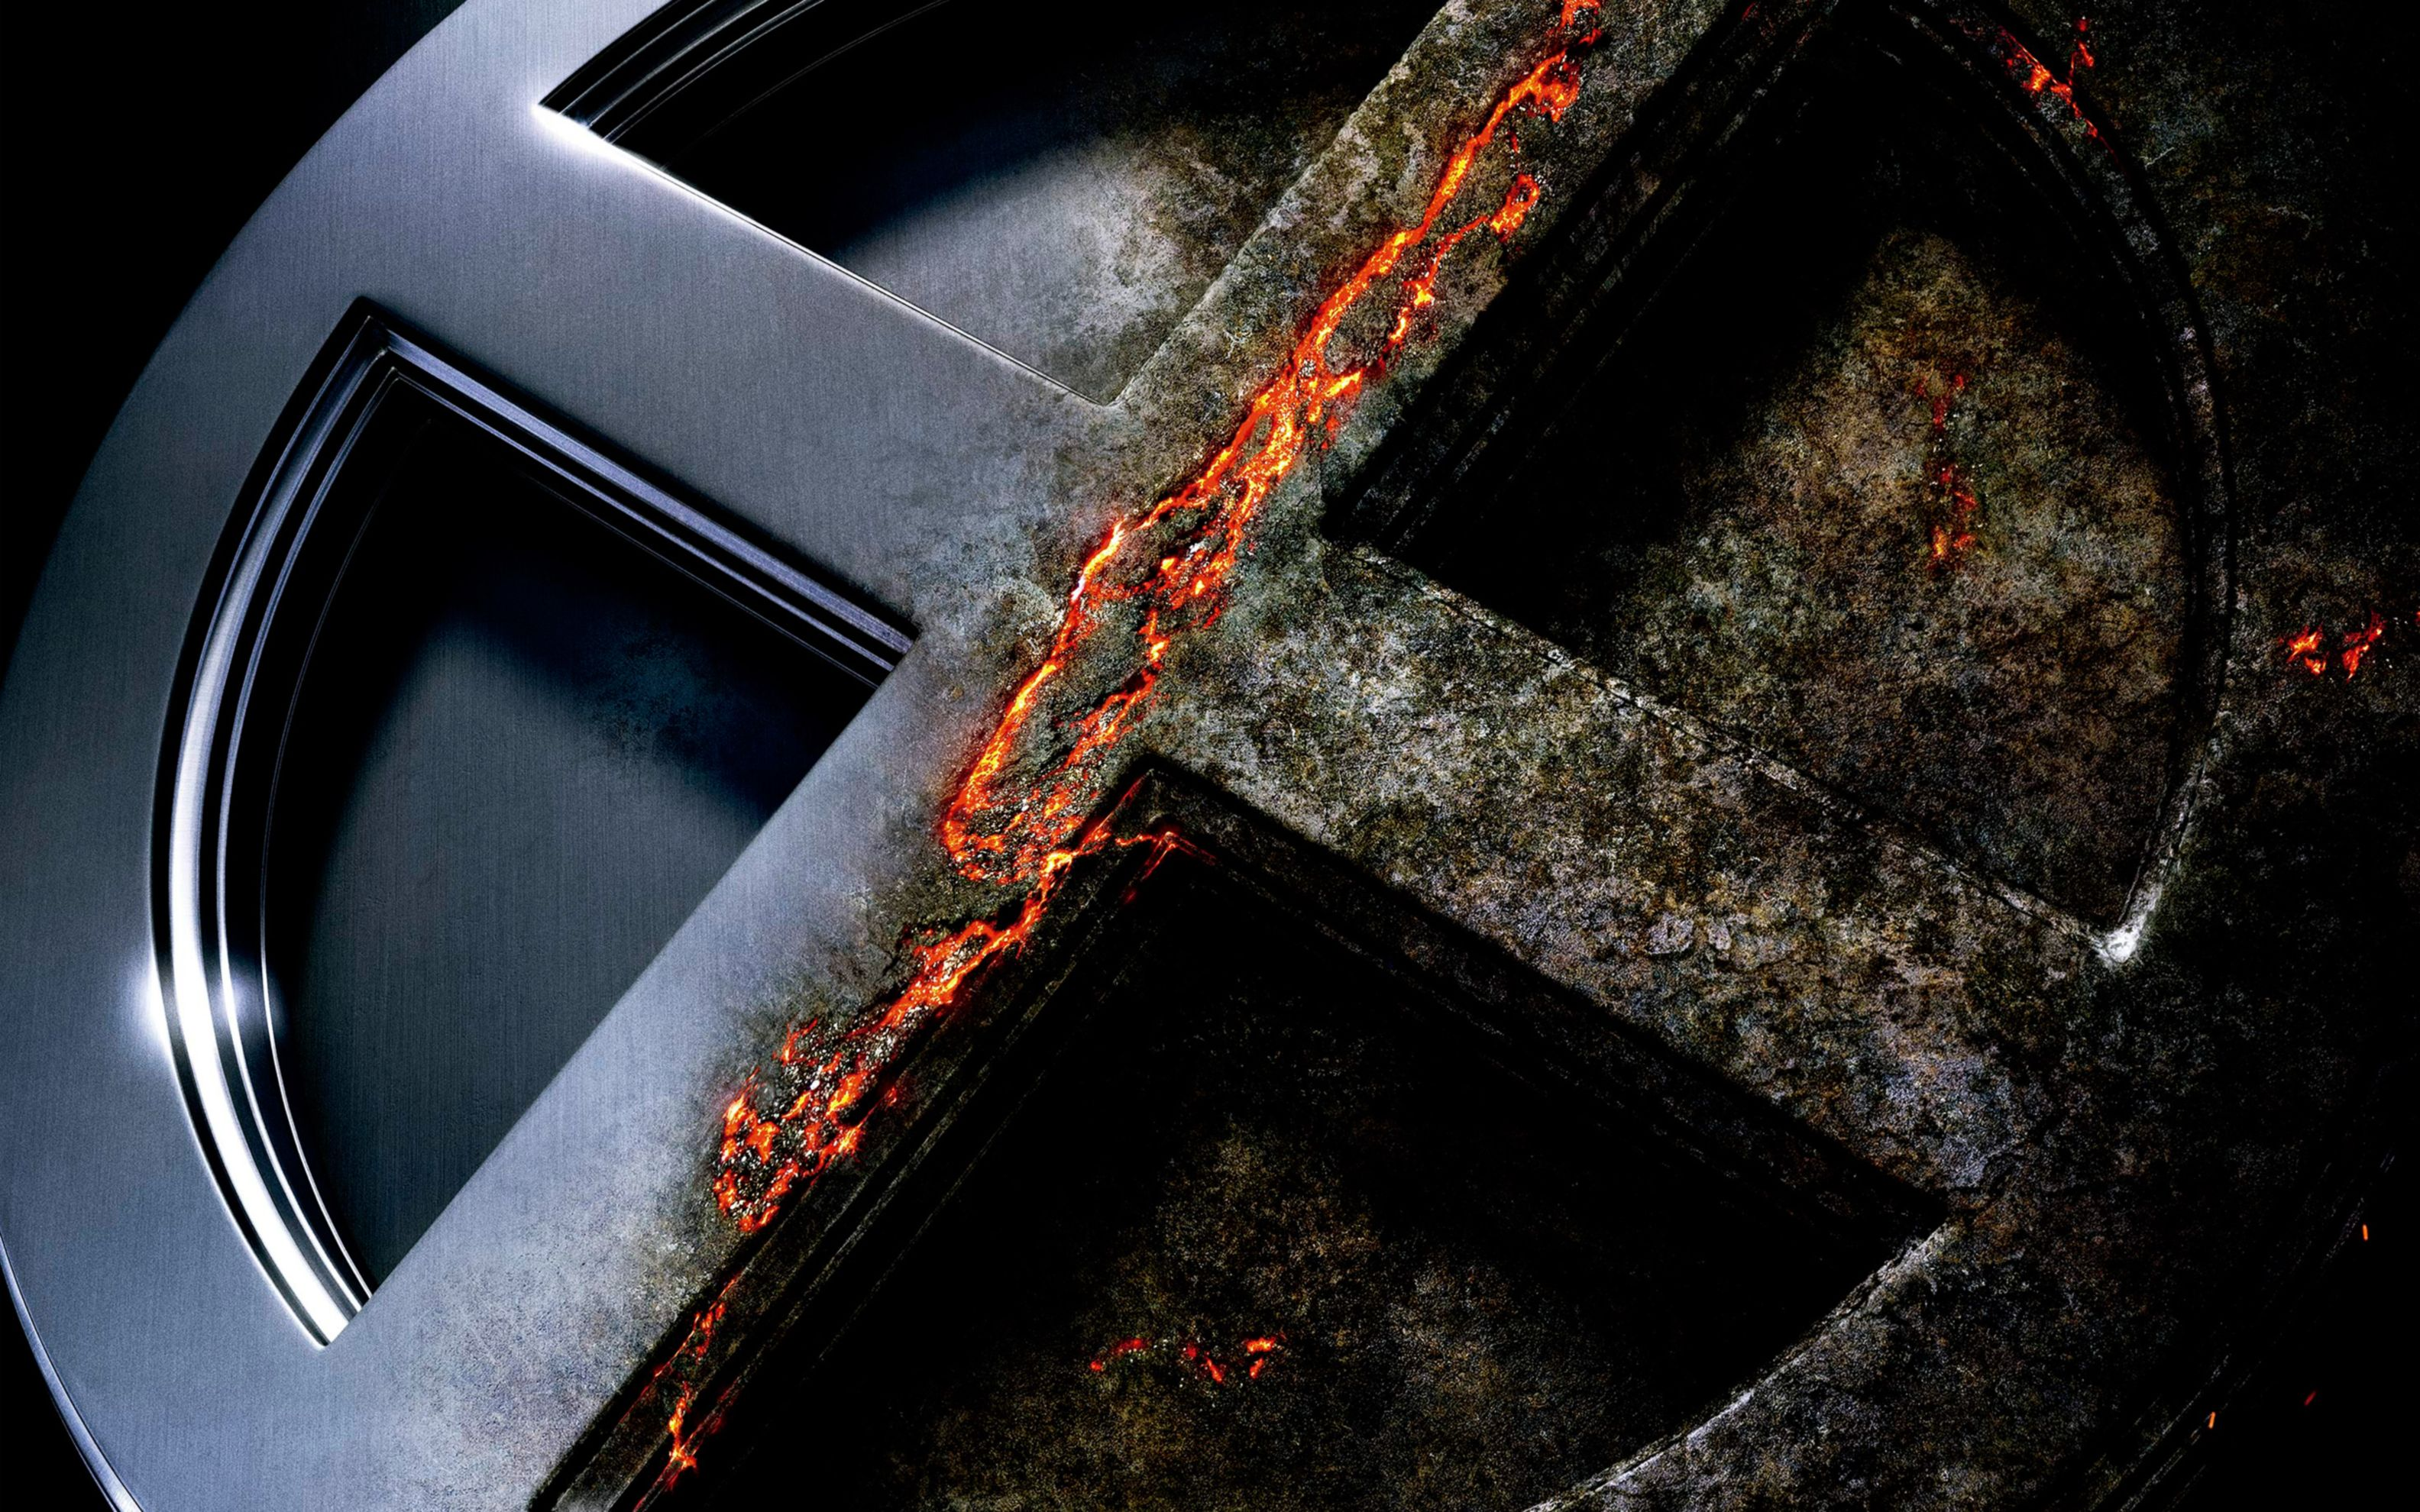 Download free HD X Men Apocalypse Wide Wallpaper, image